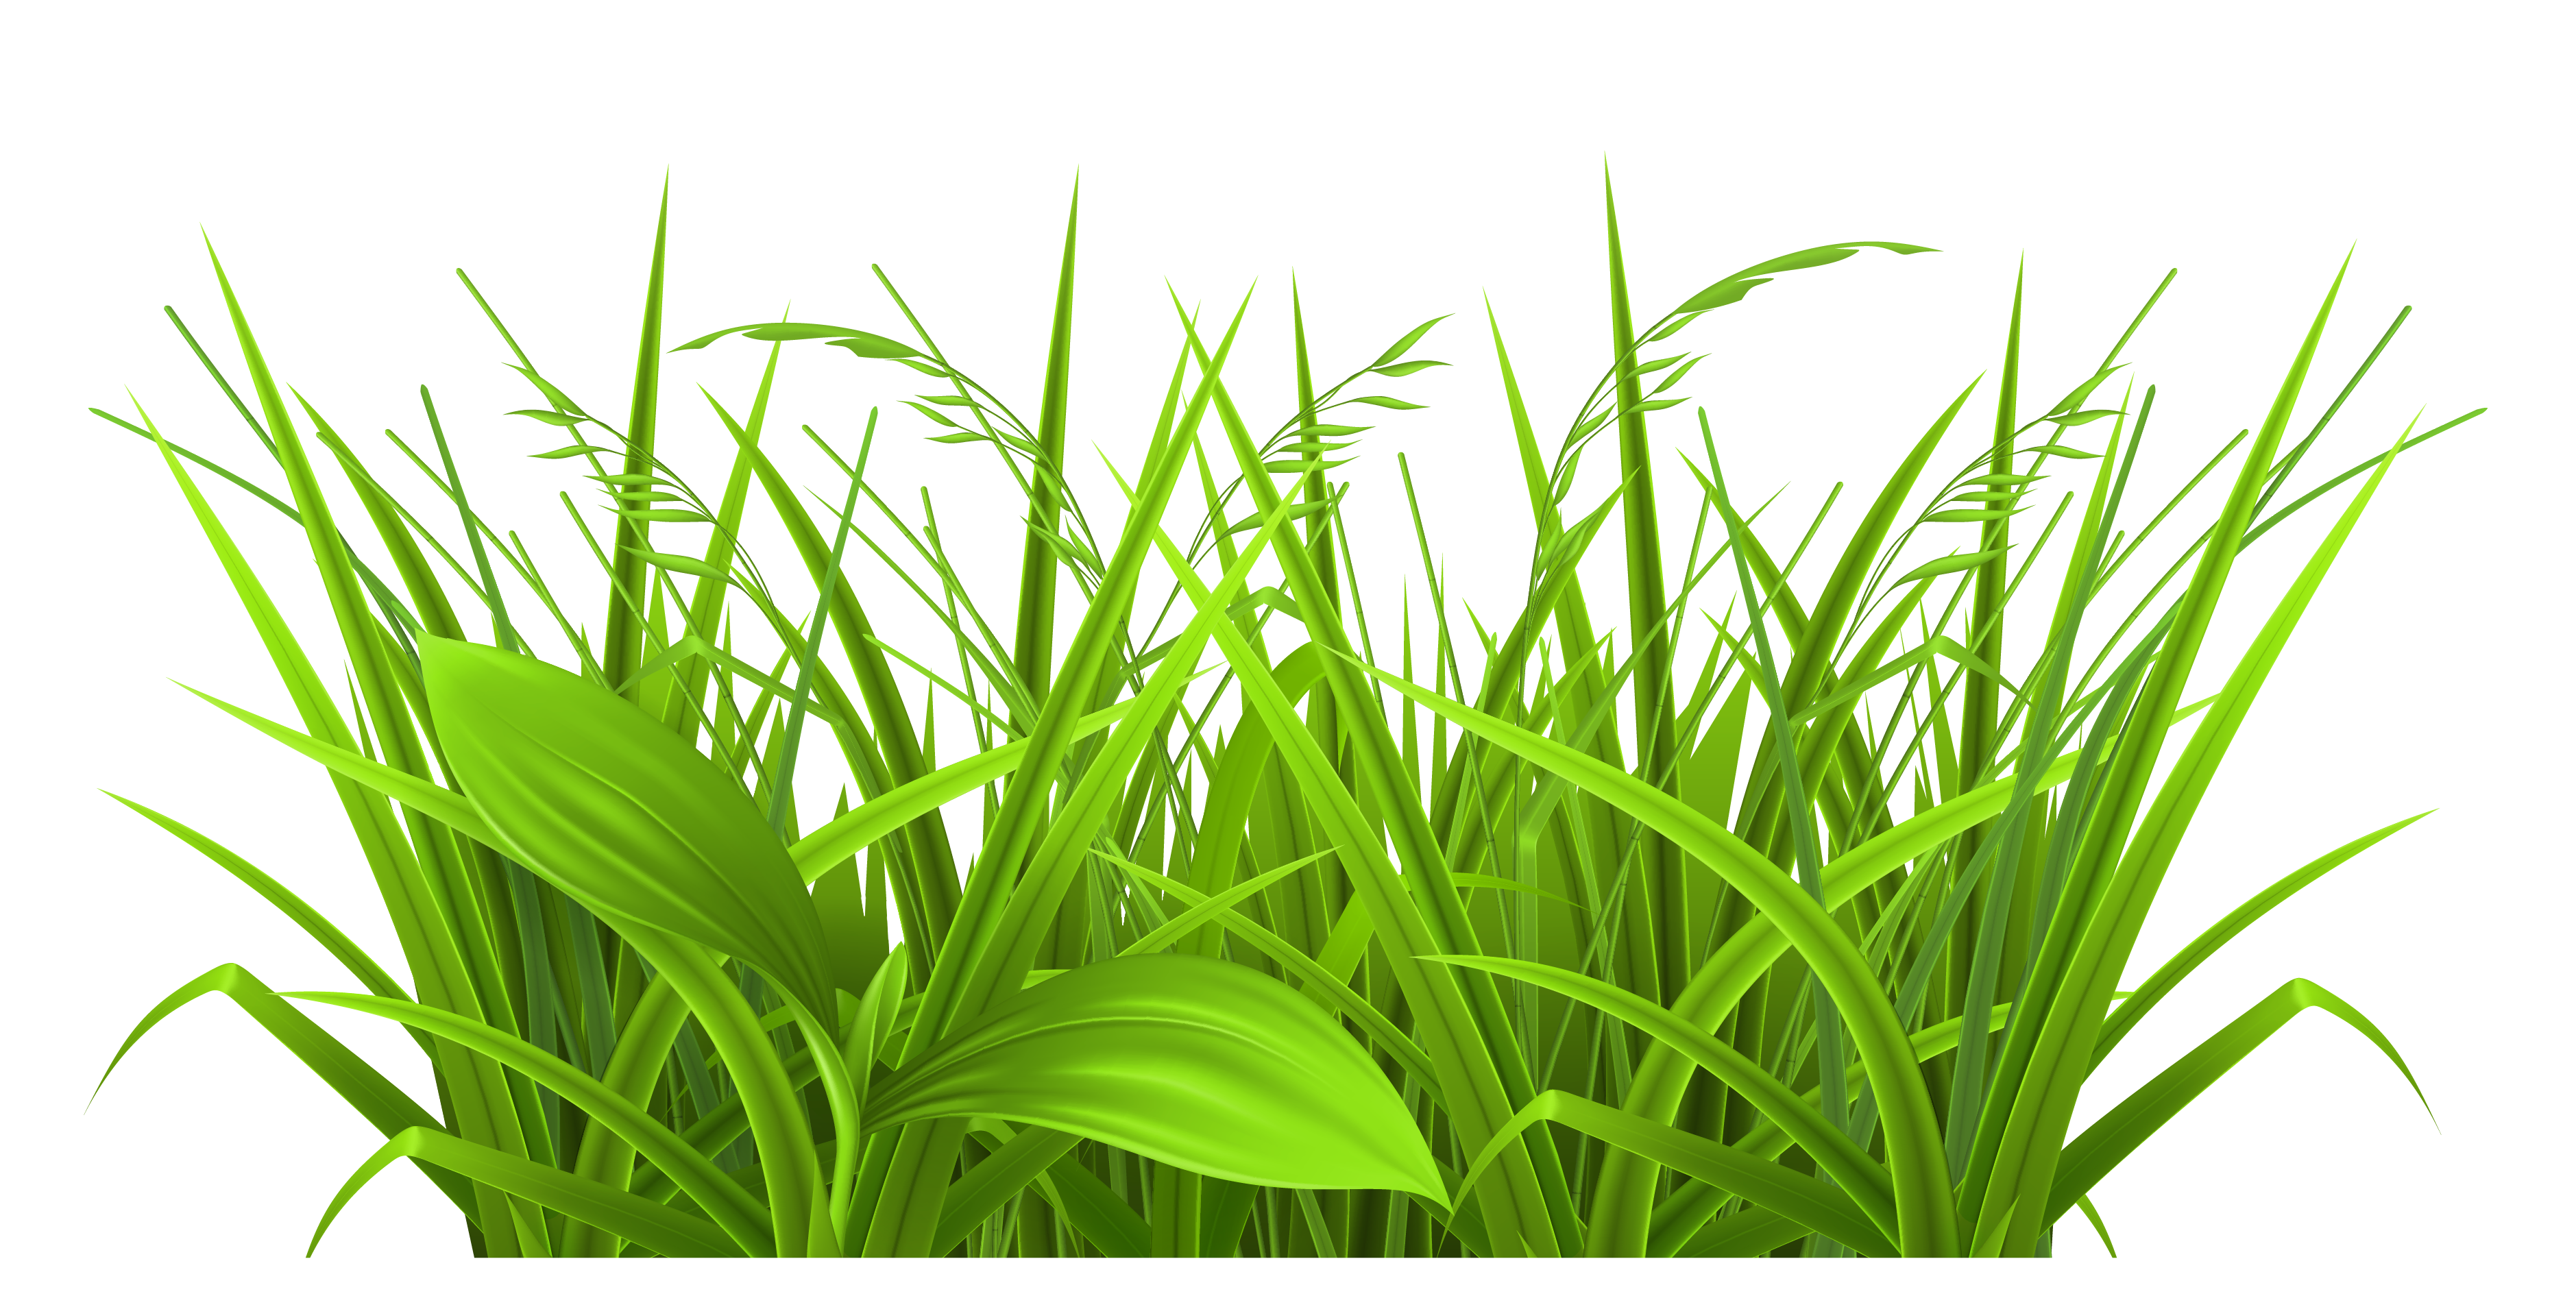 Grass jungle. Free clipart download best